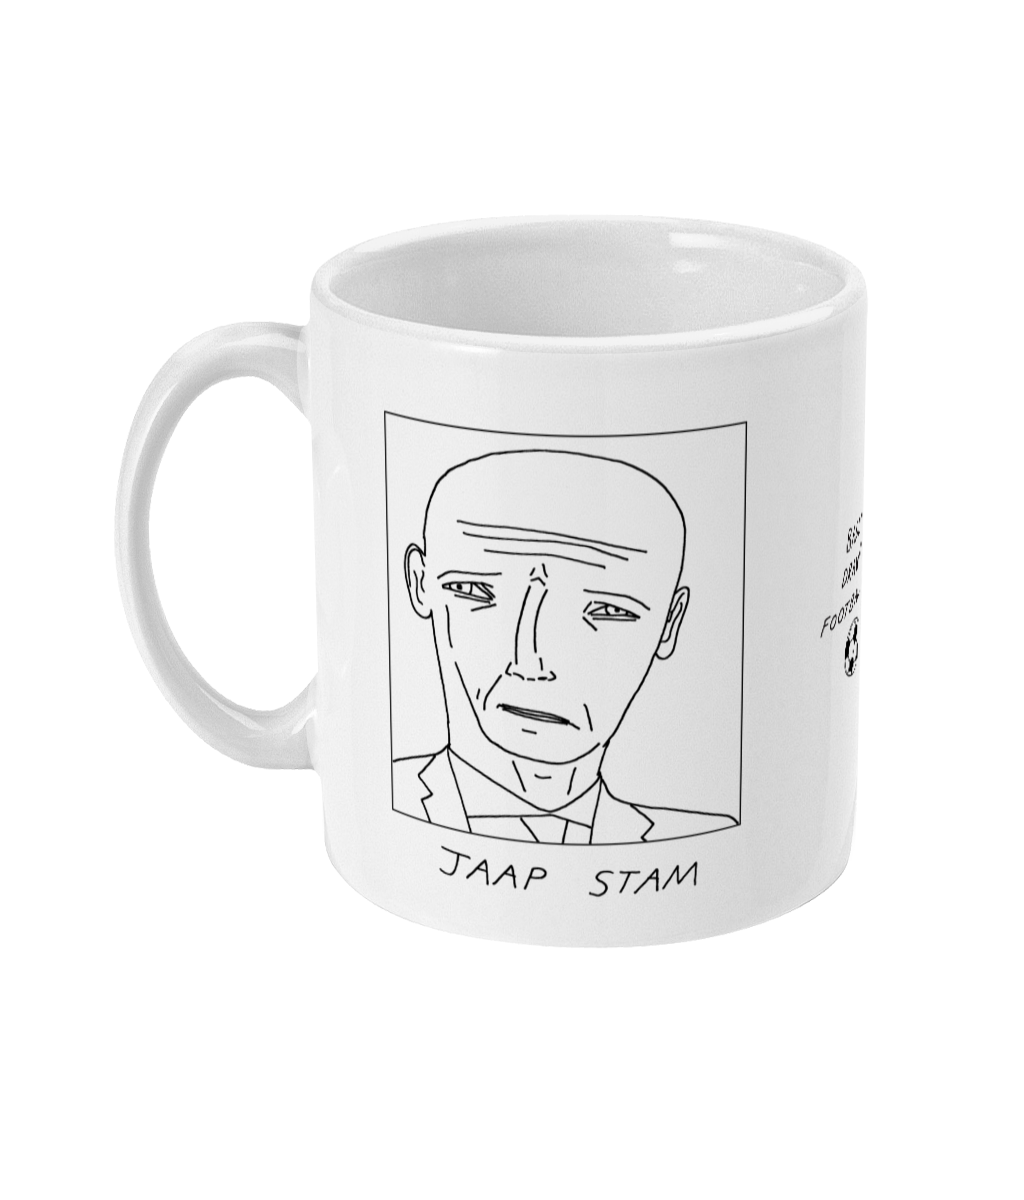 Badly Drawn Footballers Mug - Jaap Stam